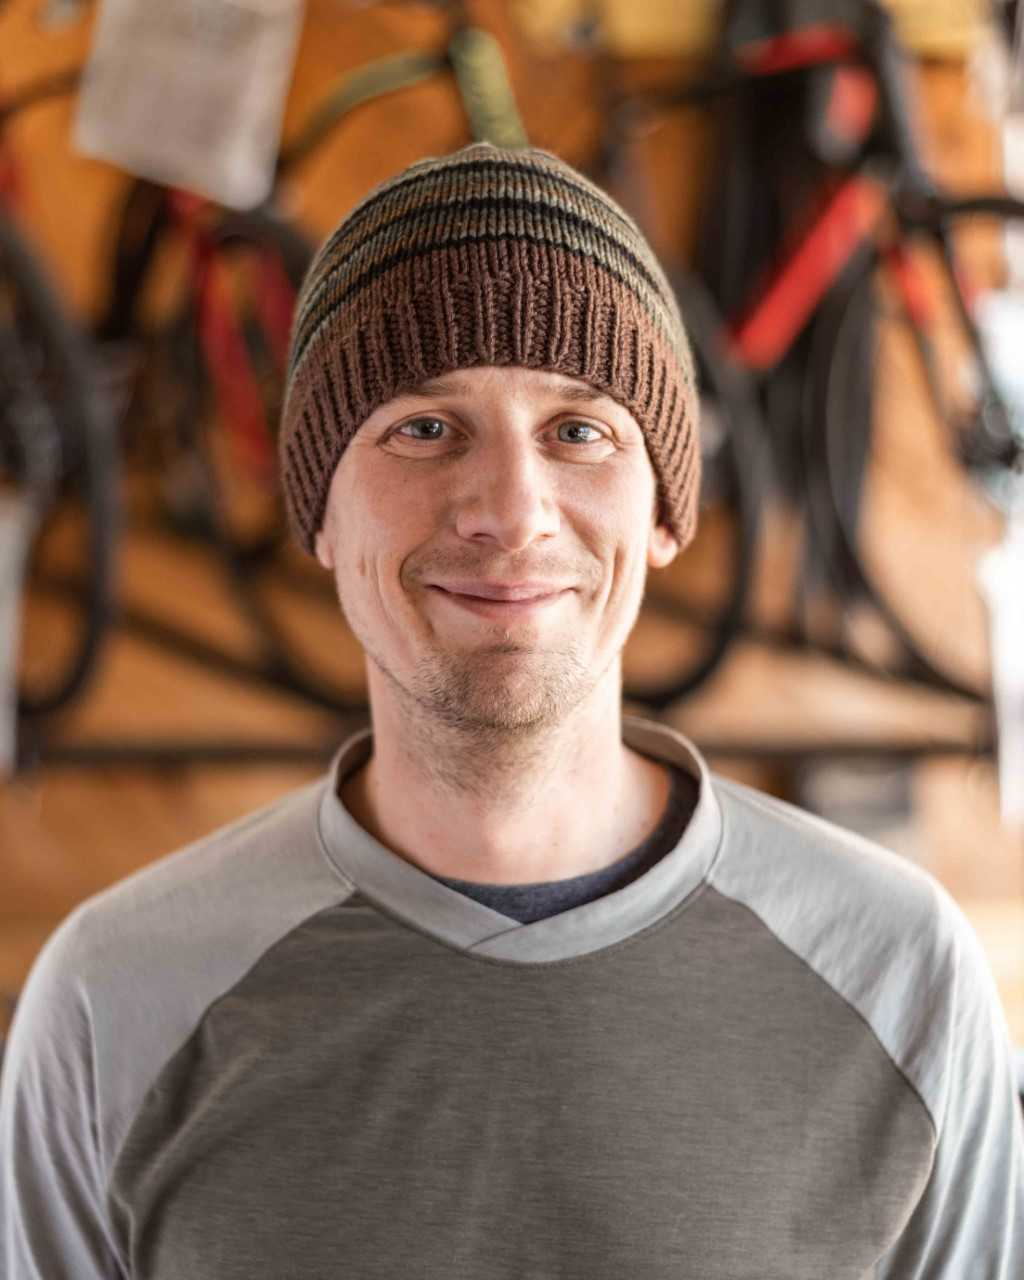 Adam    Hometown:  State College, PA   Experience:  Has worked here since November 2018. Has been riding bikes seriously for the past 20 years.   Favorite Bike:  The Schwinn Twin   What do you do when you are not on the bike?  Really enjoys spending time outdoors.